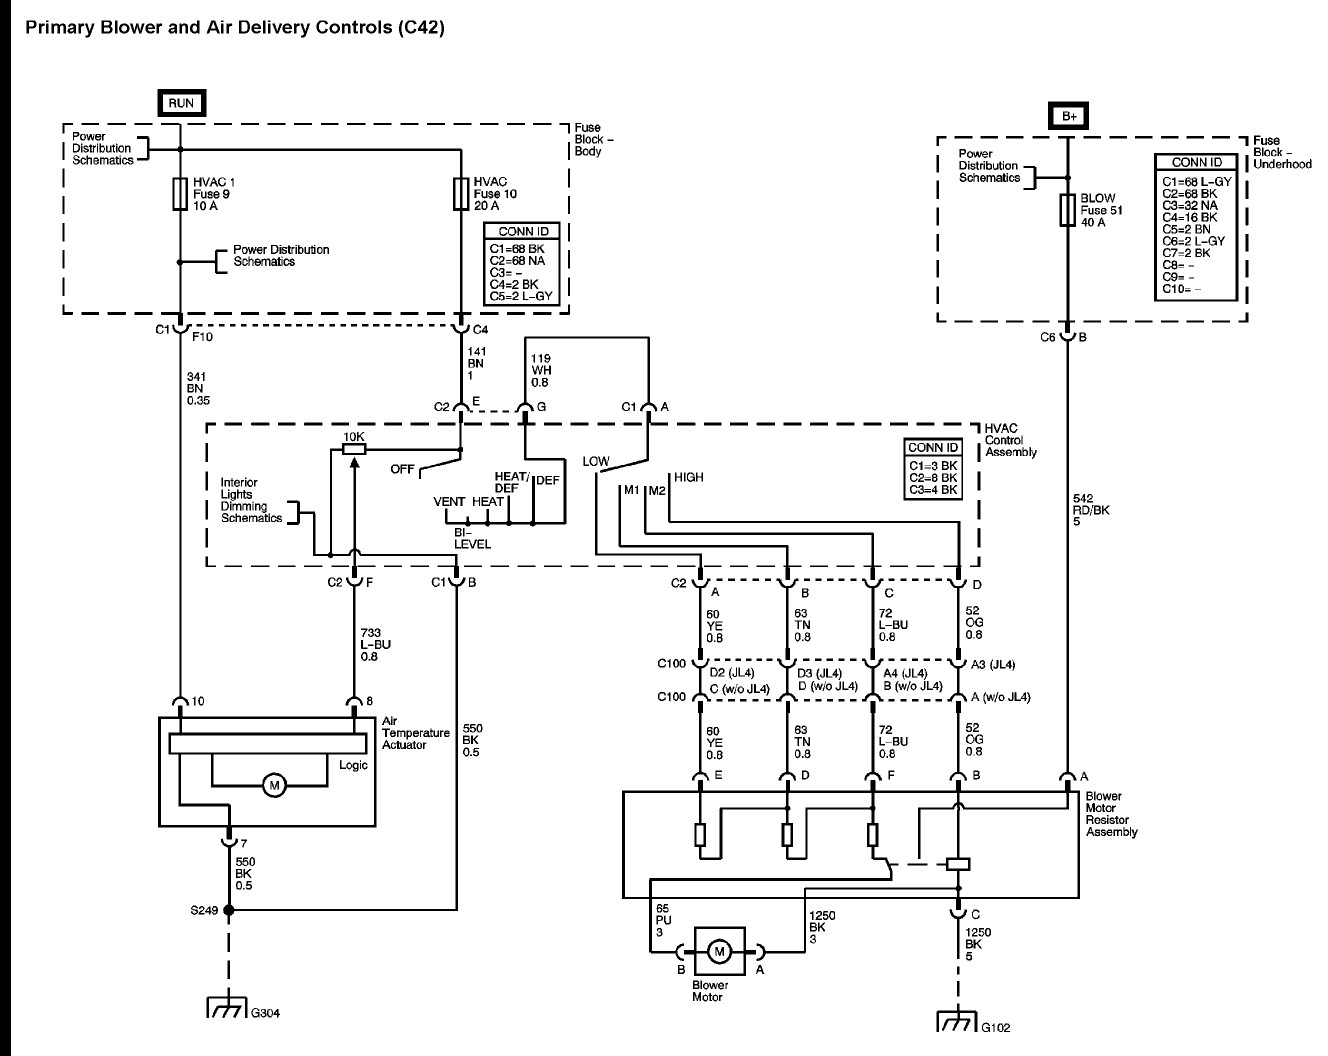 [SCHEMATICS_4FR]  2007 Chevy Silverado Blower Motor Wiring Diagram. where is the blower motor  relay on an 06 chevy silverado. 03 silverado horn wiring diagram wiring  diagram database. chevy silverado drawing at free for. | Gm Blower Motor Wiring Diagram |  | 2002-acura-tl-radio.info